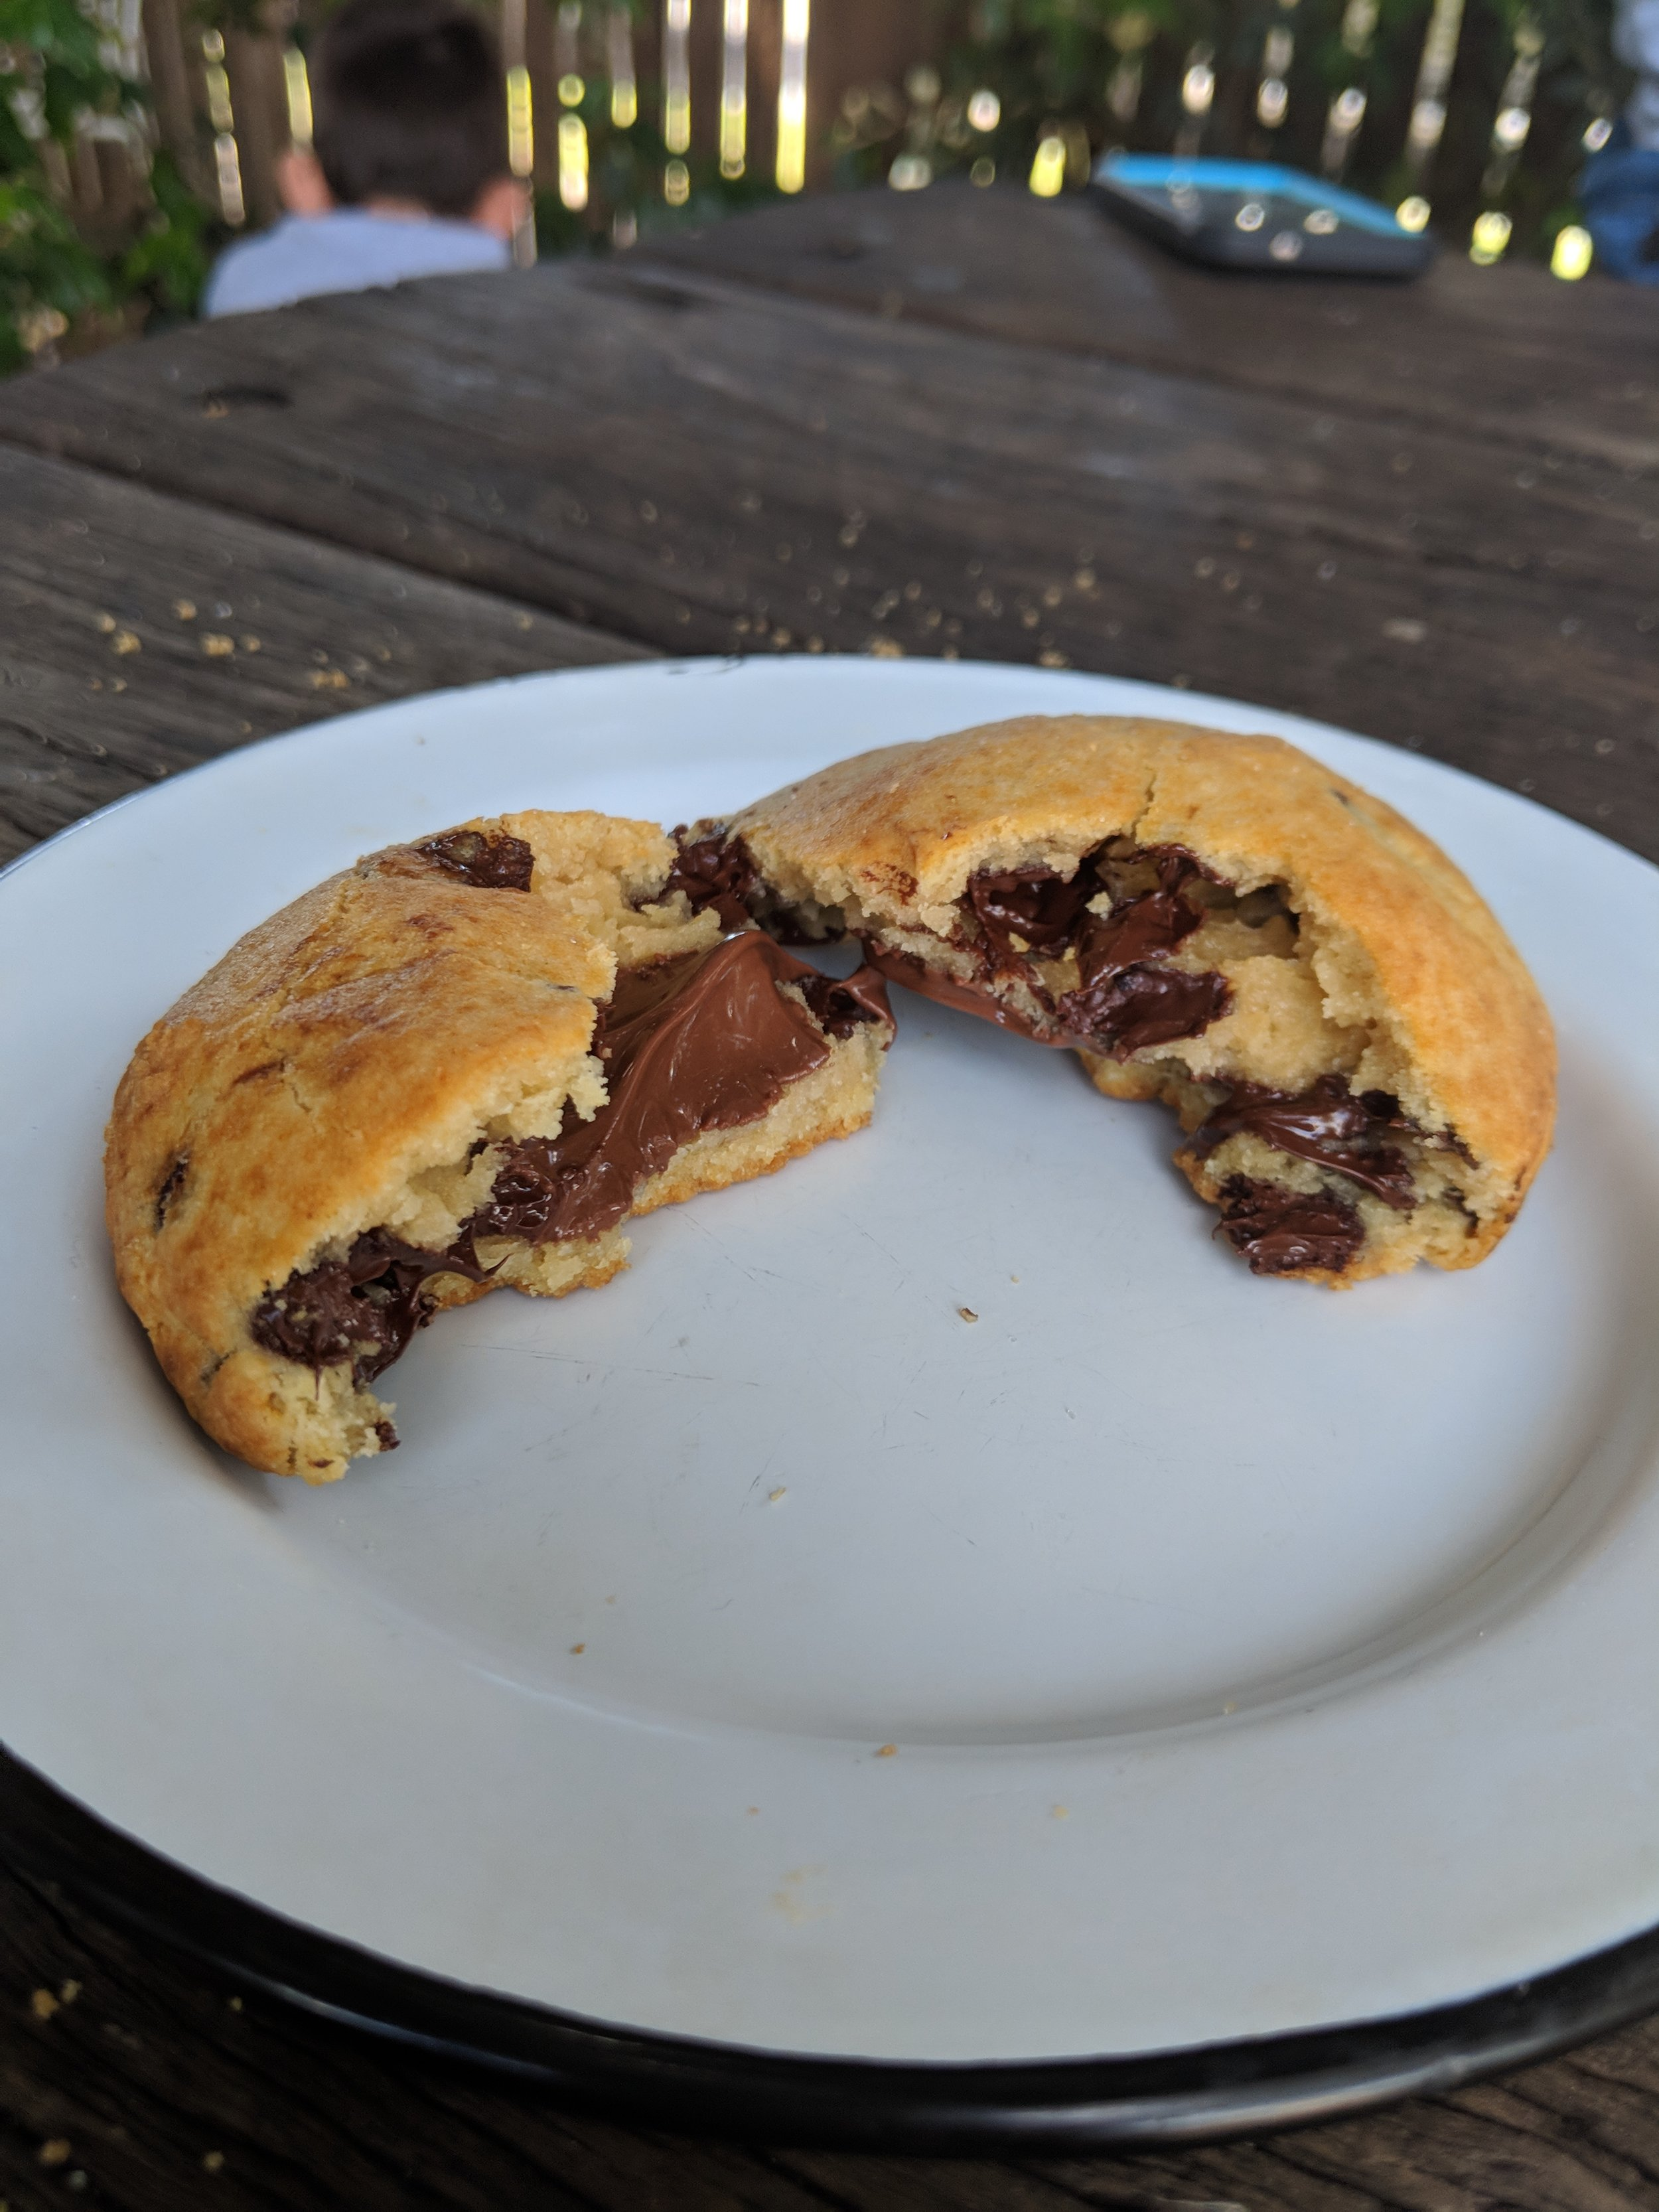 Nutella stuffed chocolate chip cookie